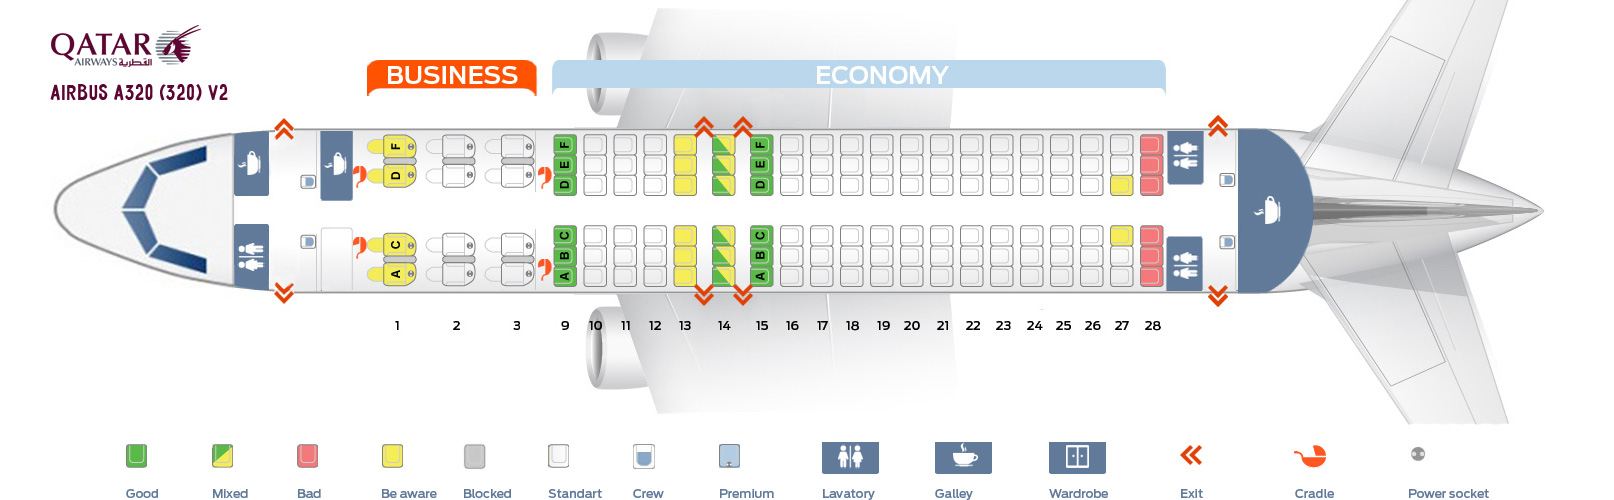 Seat Map Airbus A320-200 V2 Qatar Airways